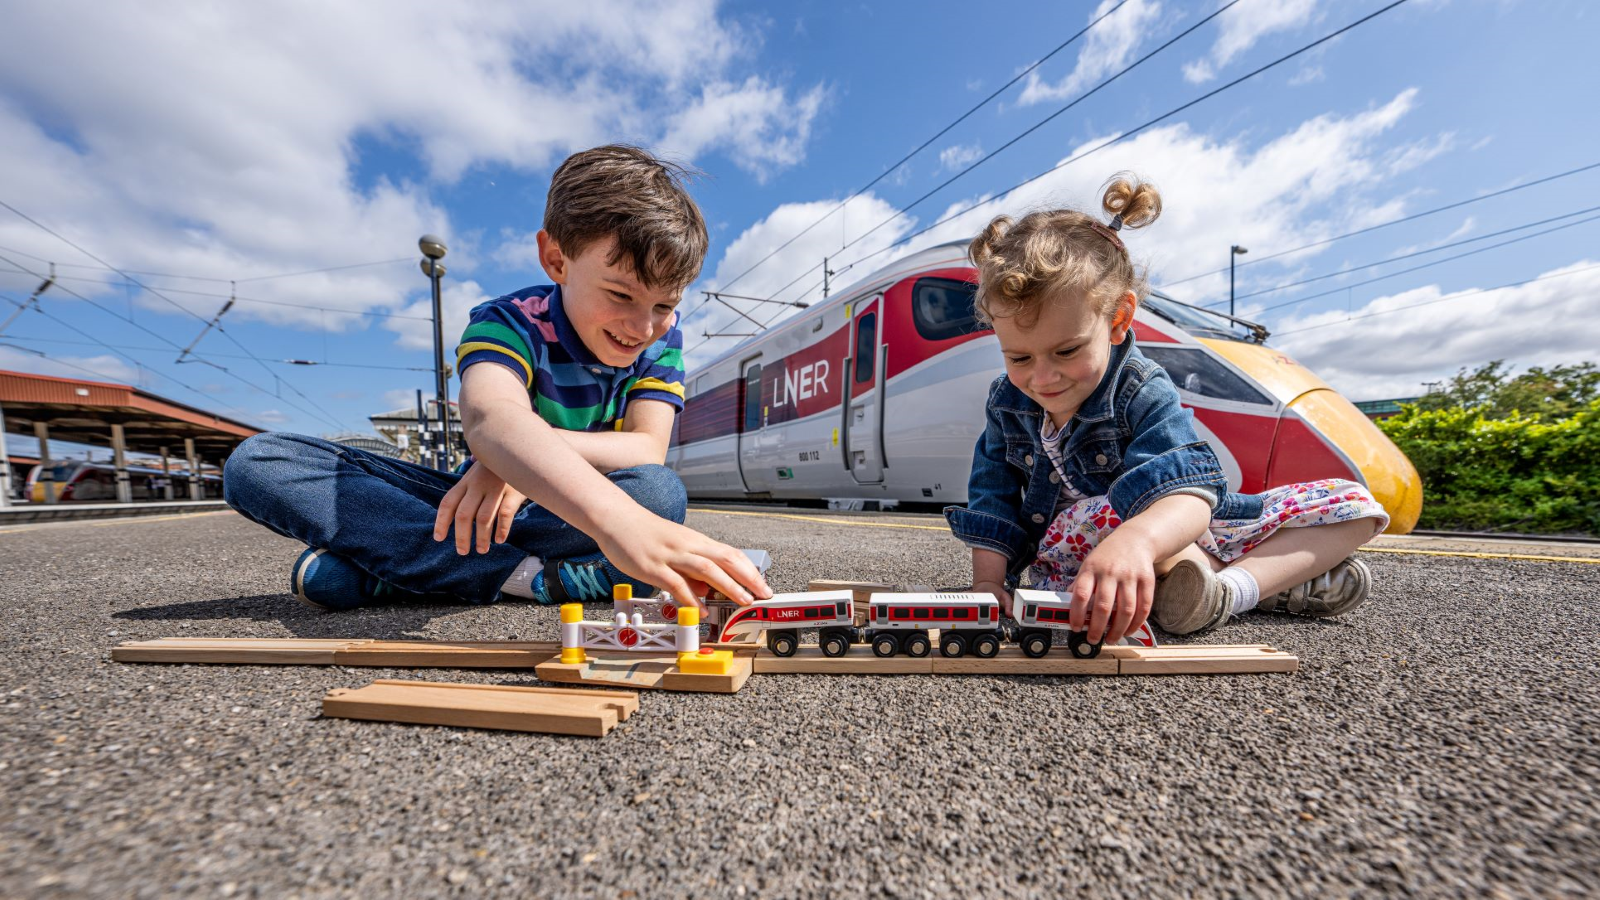 A model launch: LNER releases Azuma toy train in partnership with the National Railway Museum